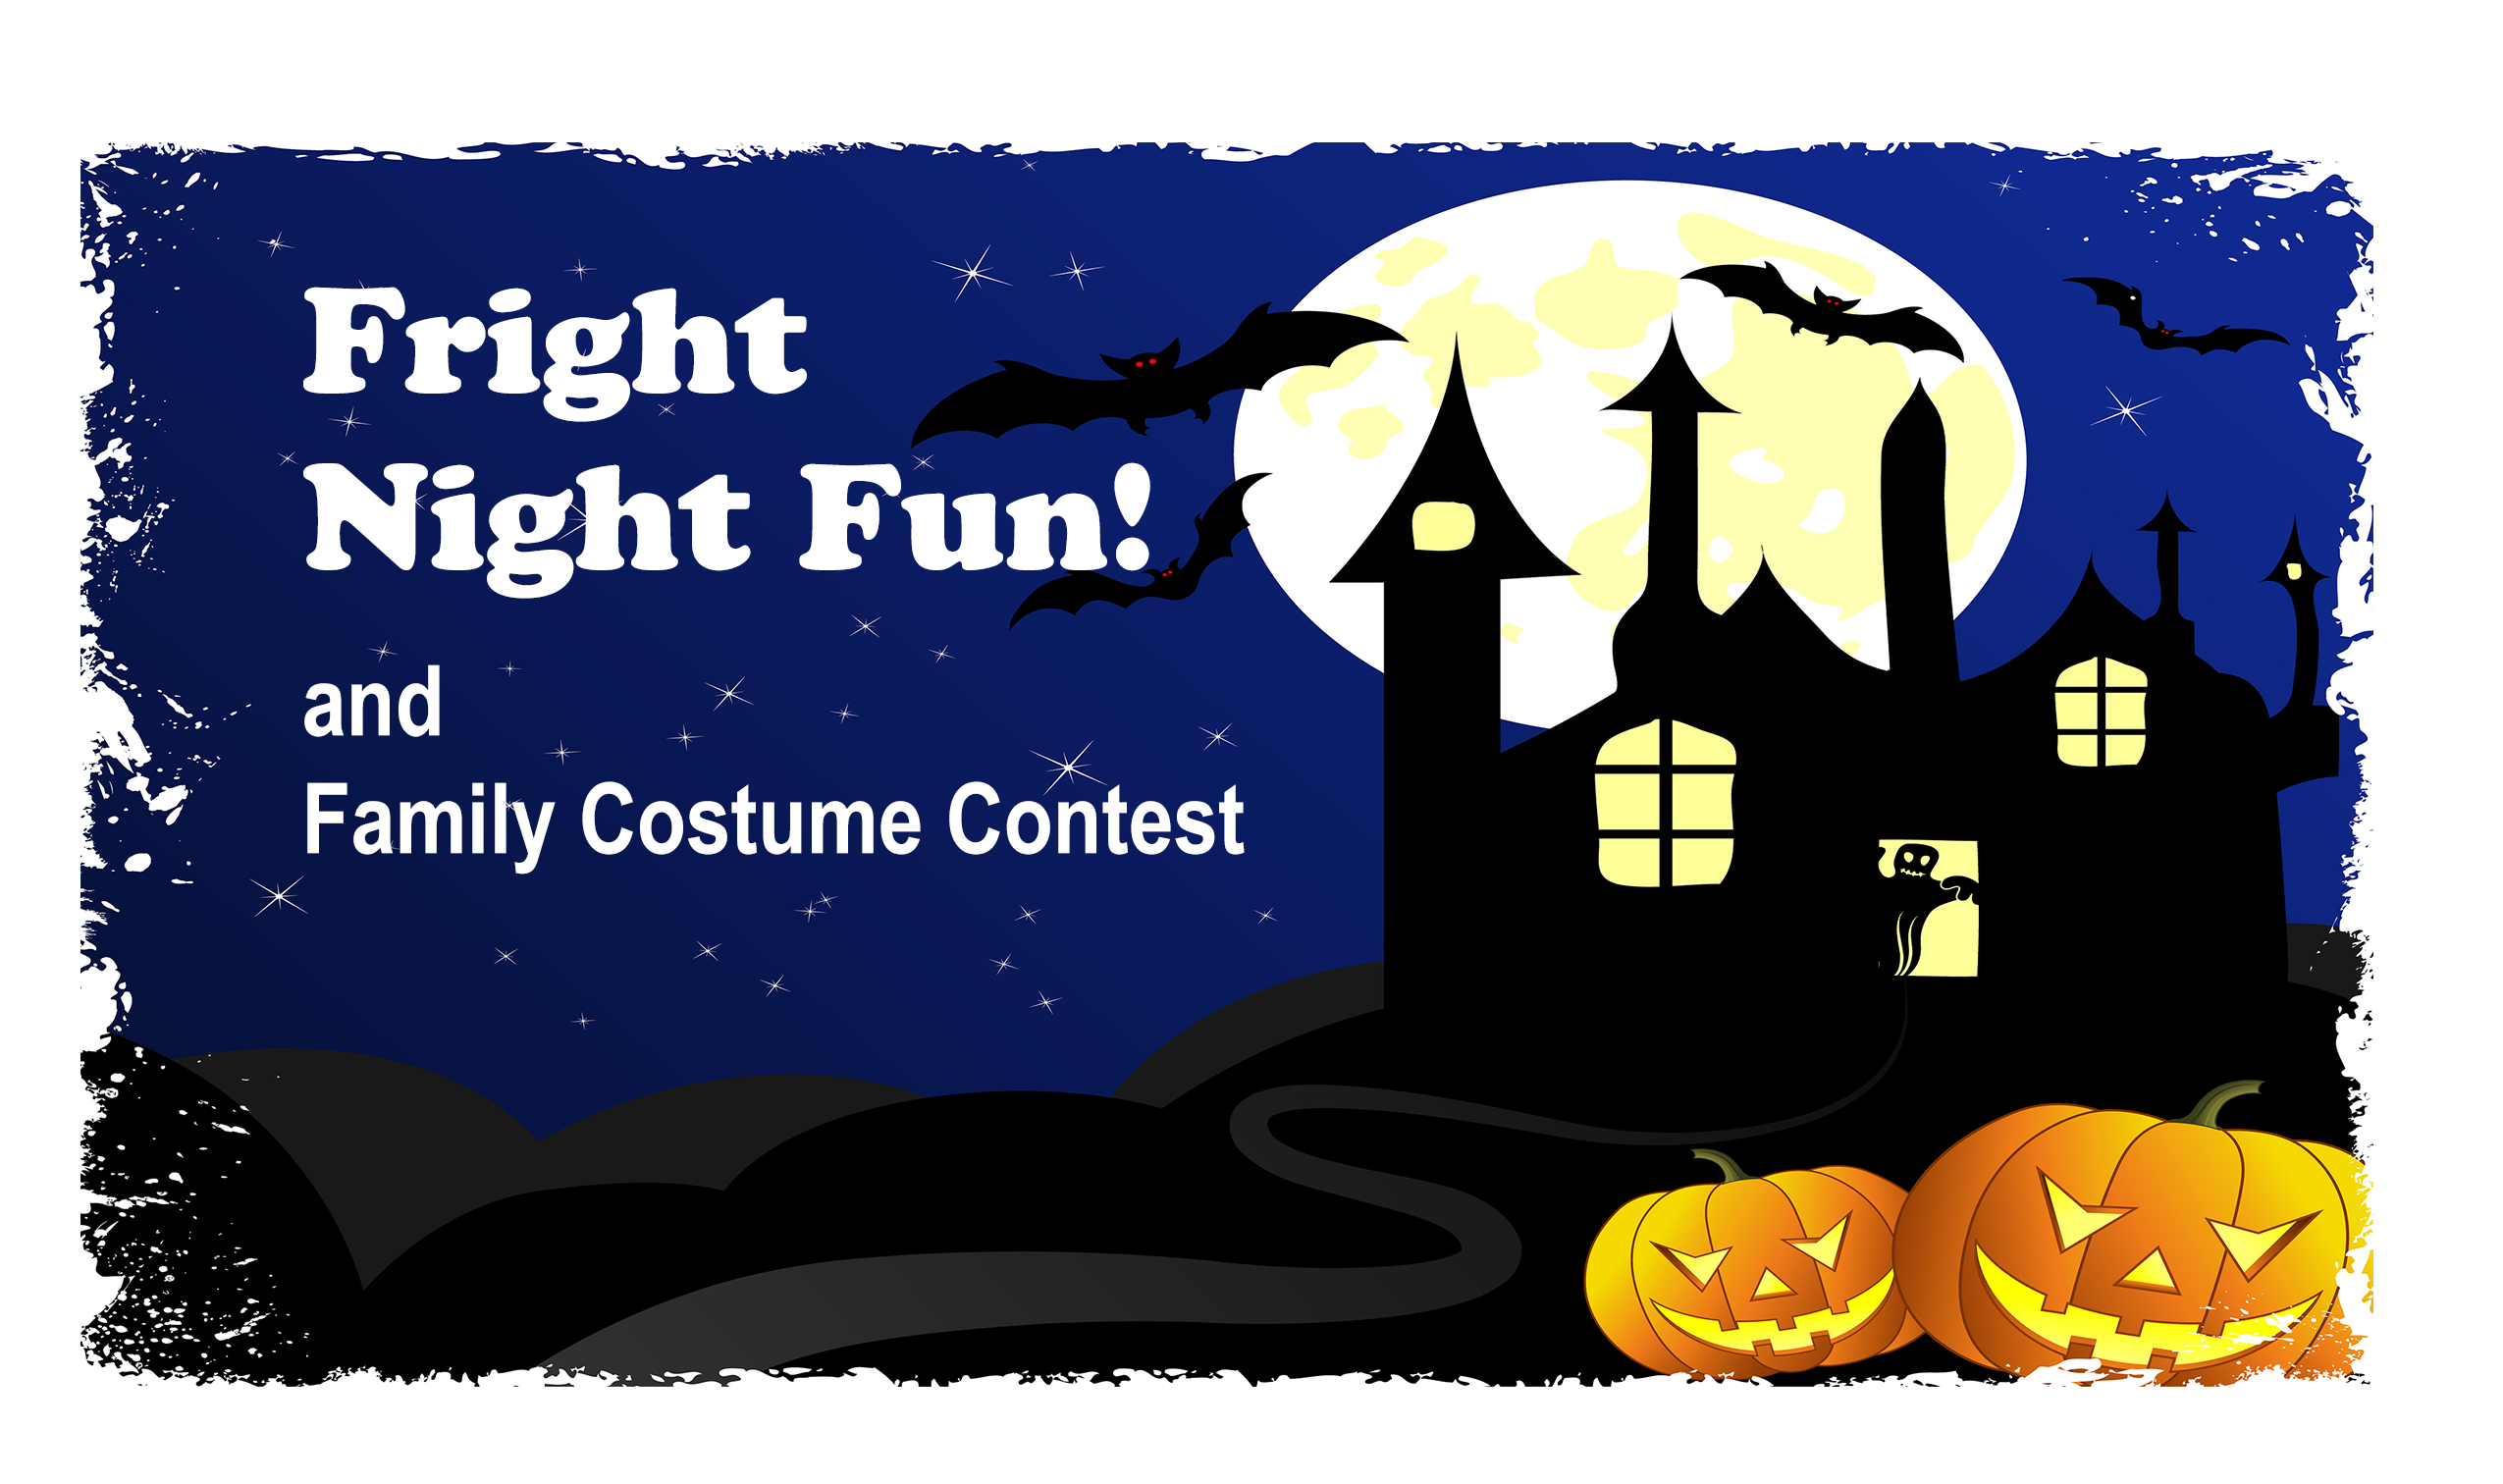 fright night event coverpng - Halloween Events In Va